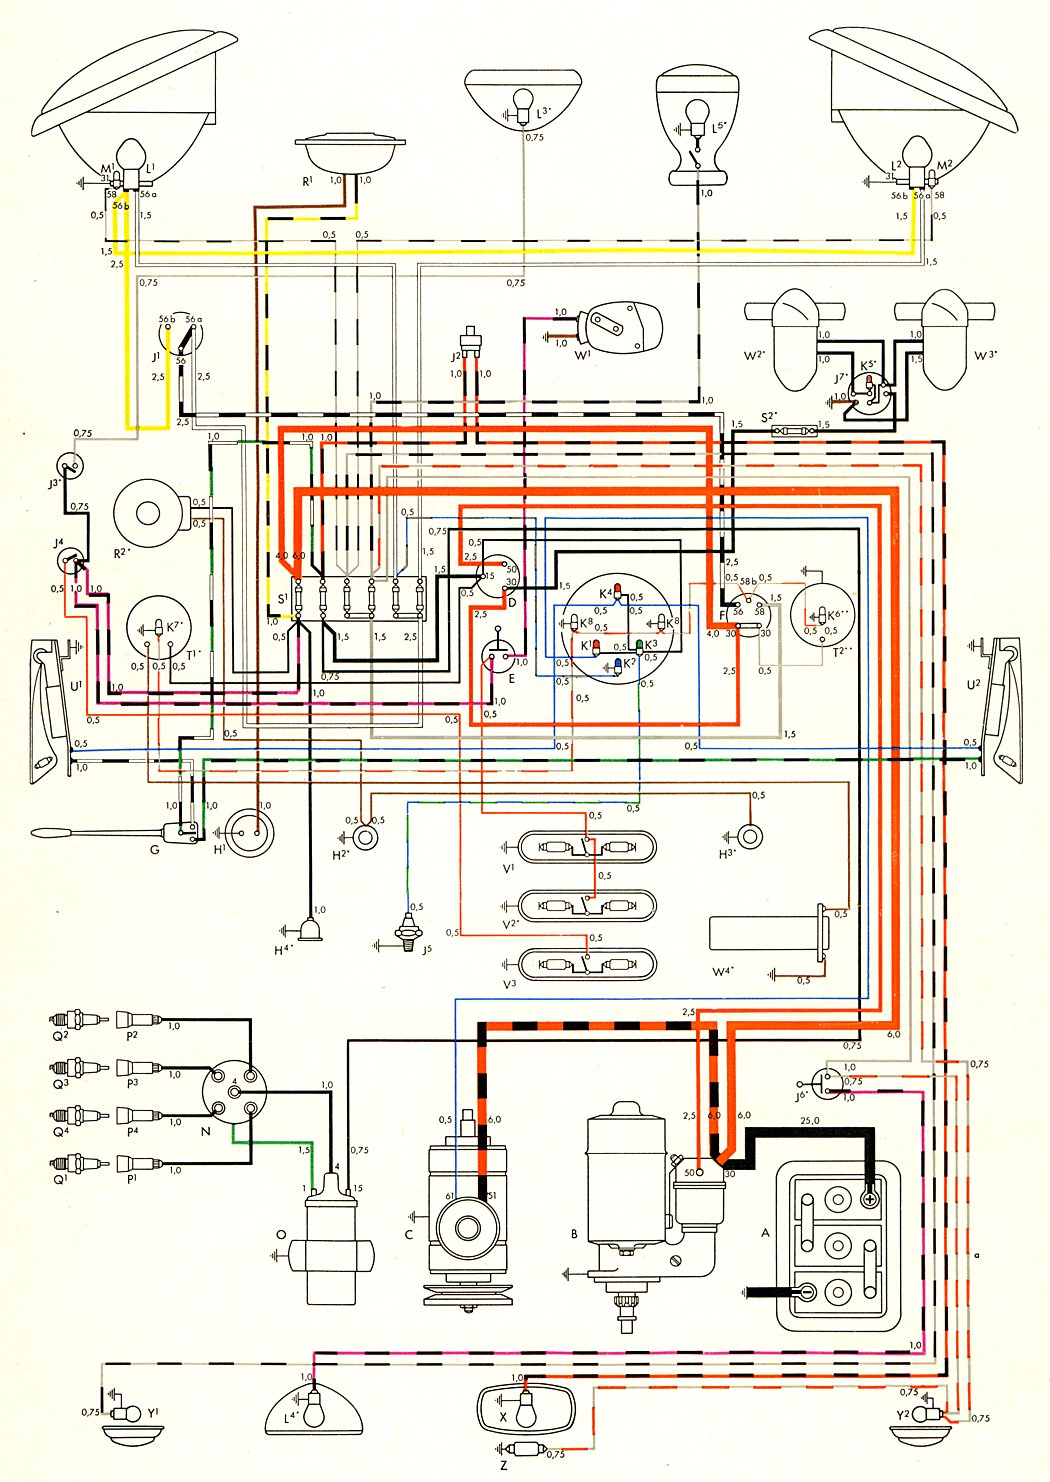 1972 vw bus wiring diagram international 4300 starter chevy c10 instrument cluster get